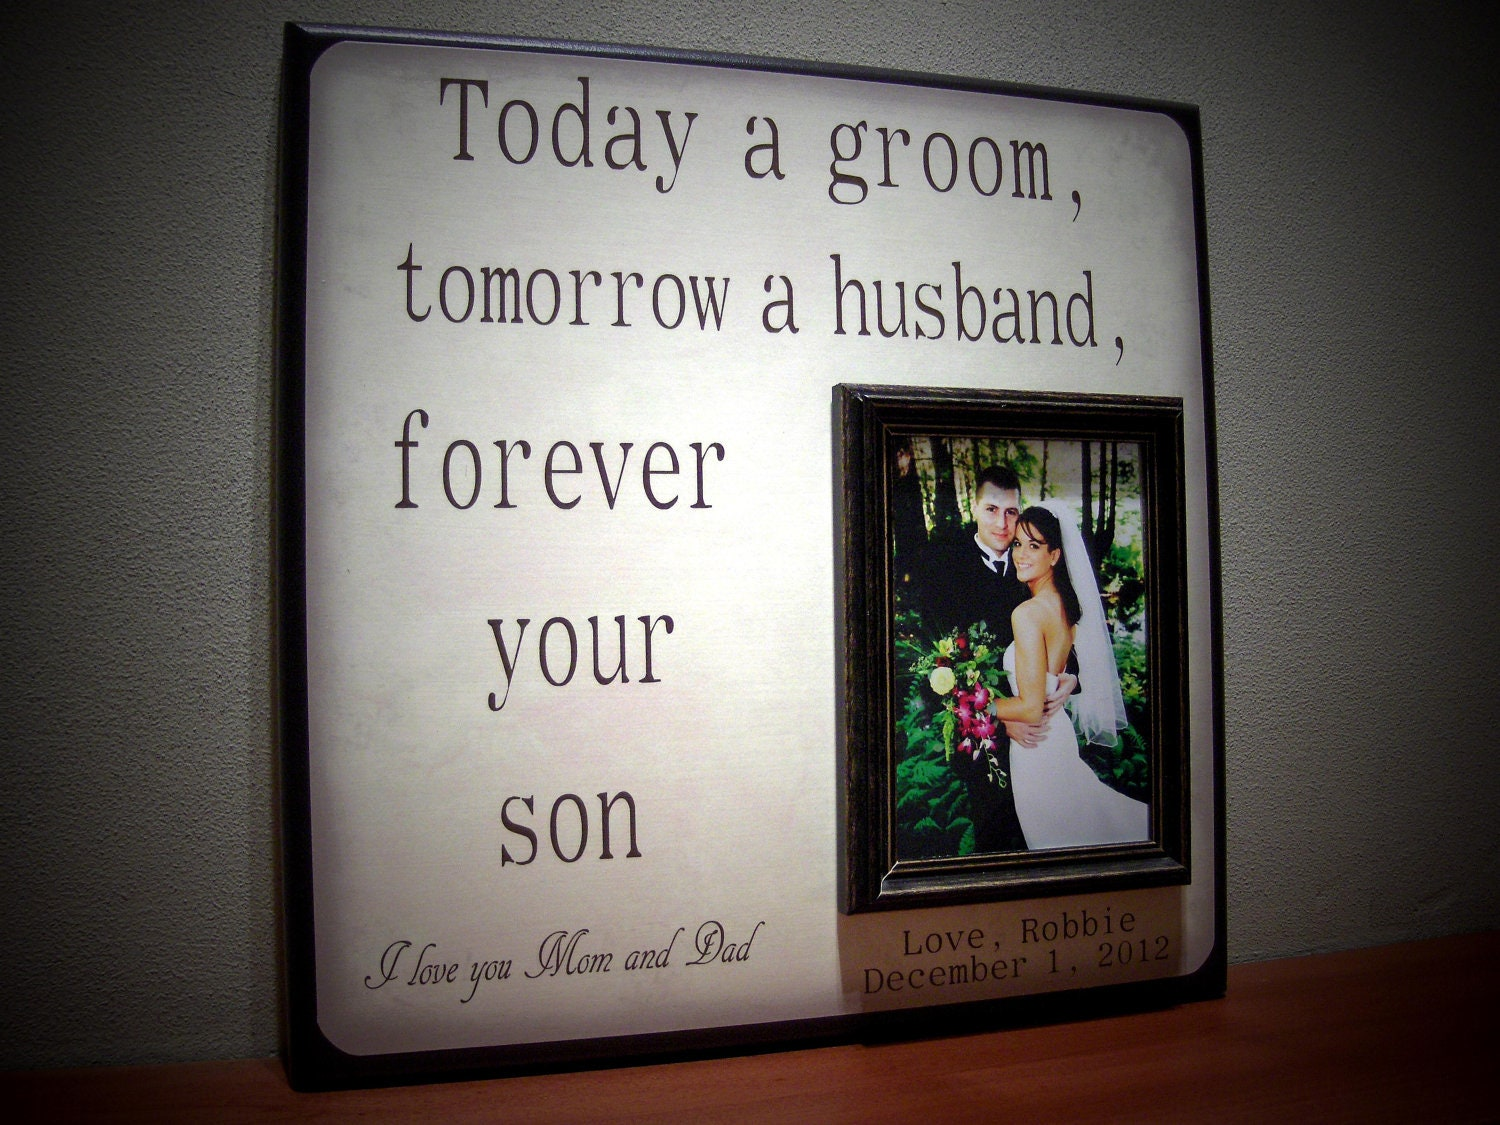 Mother Of Groom Gift Ideas For Bride : Mother of the Groom Gift Father of the Groom by YourPictureStory